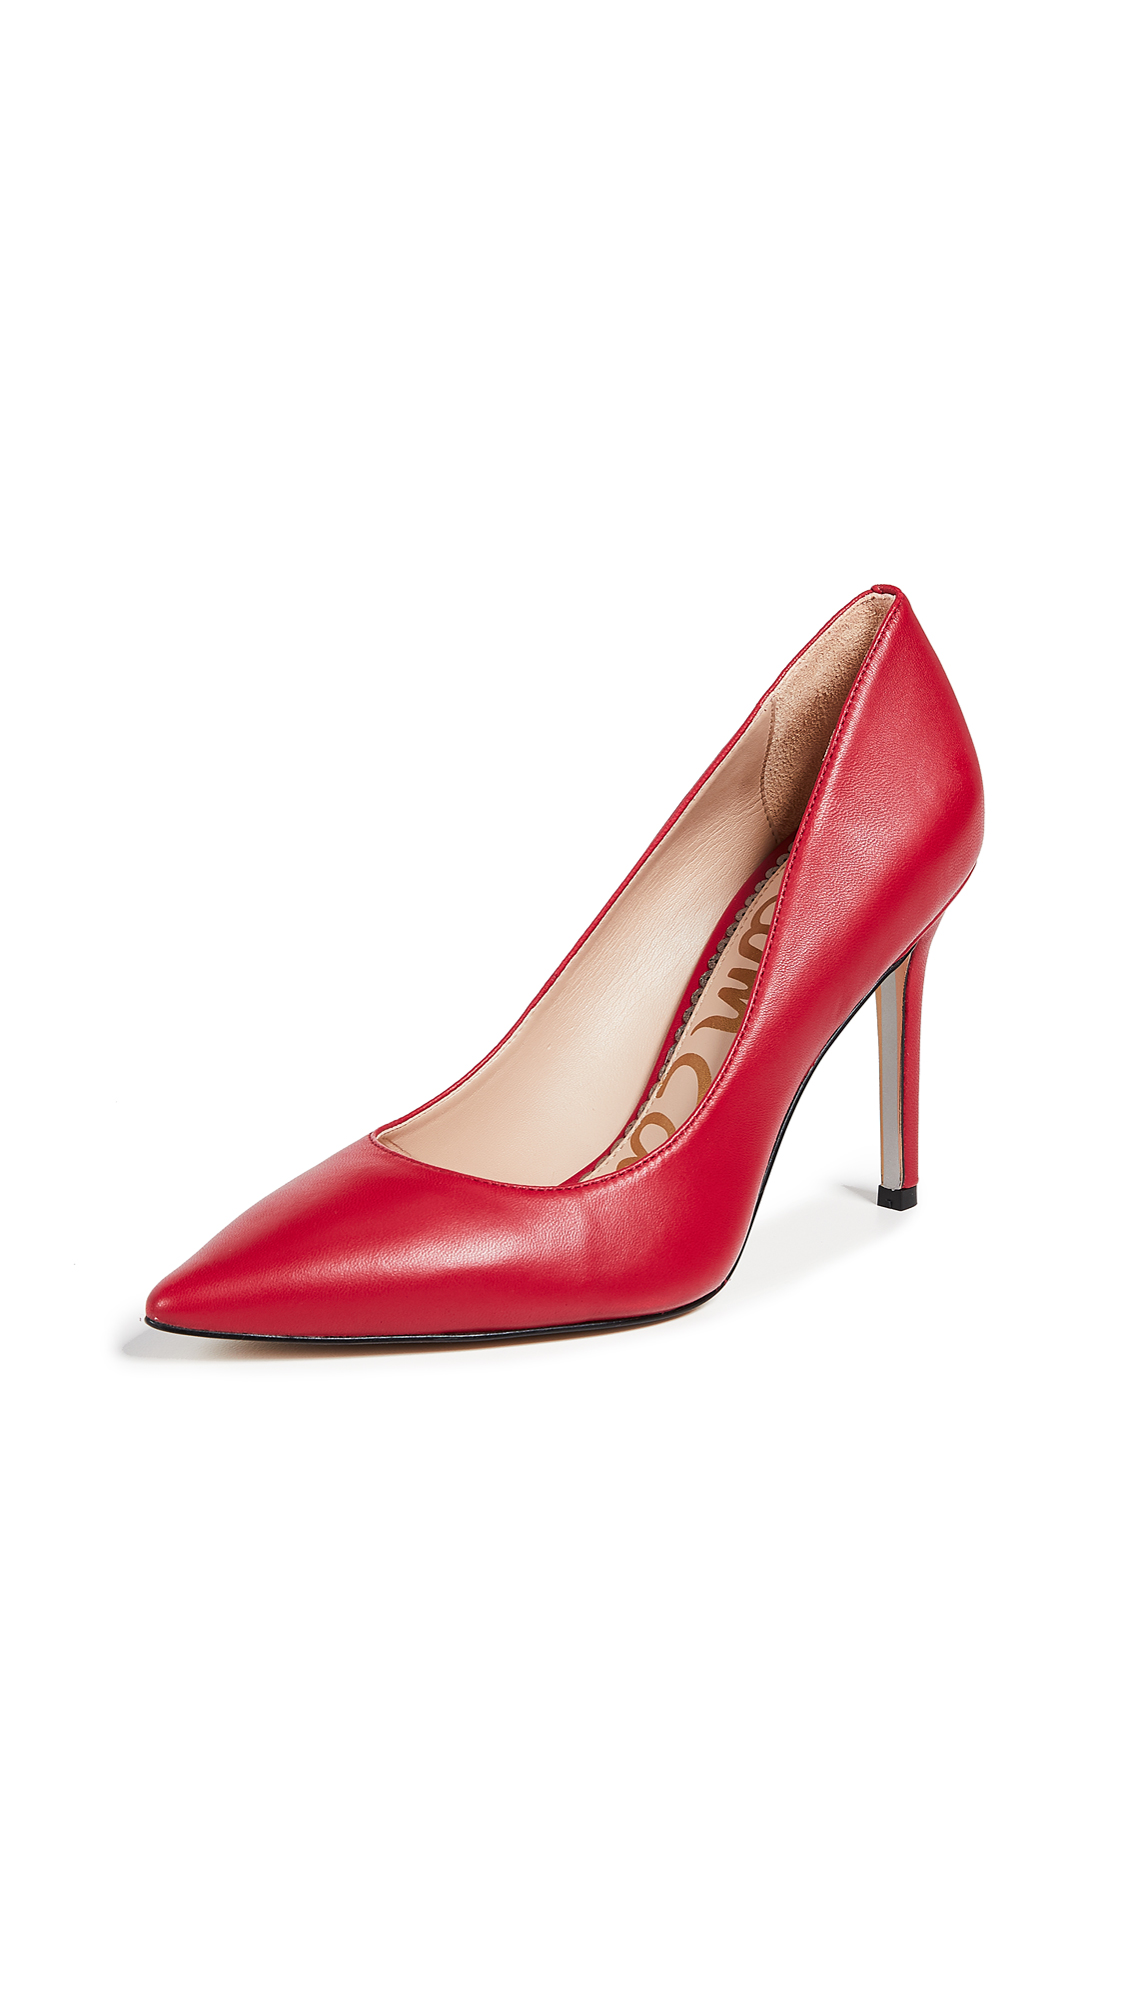 Sam Edelman Hazel Pumps - Deep Red